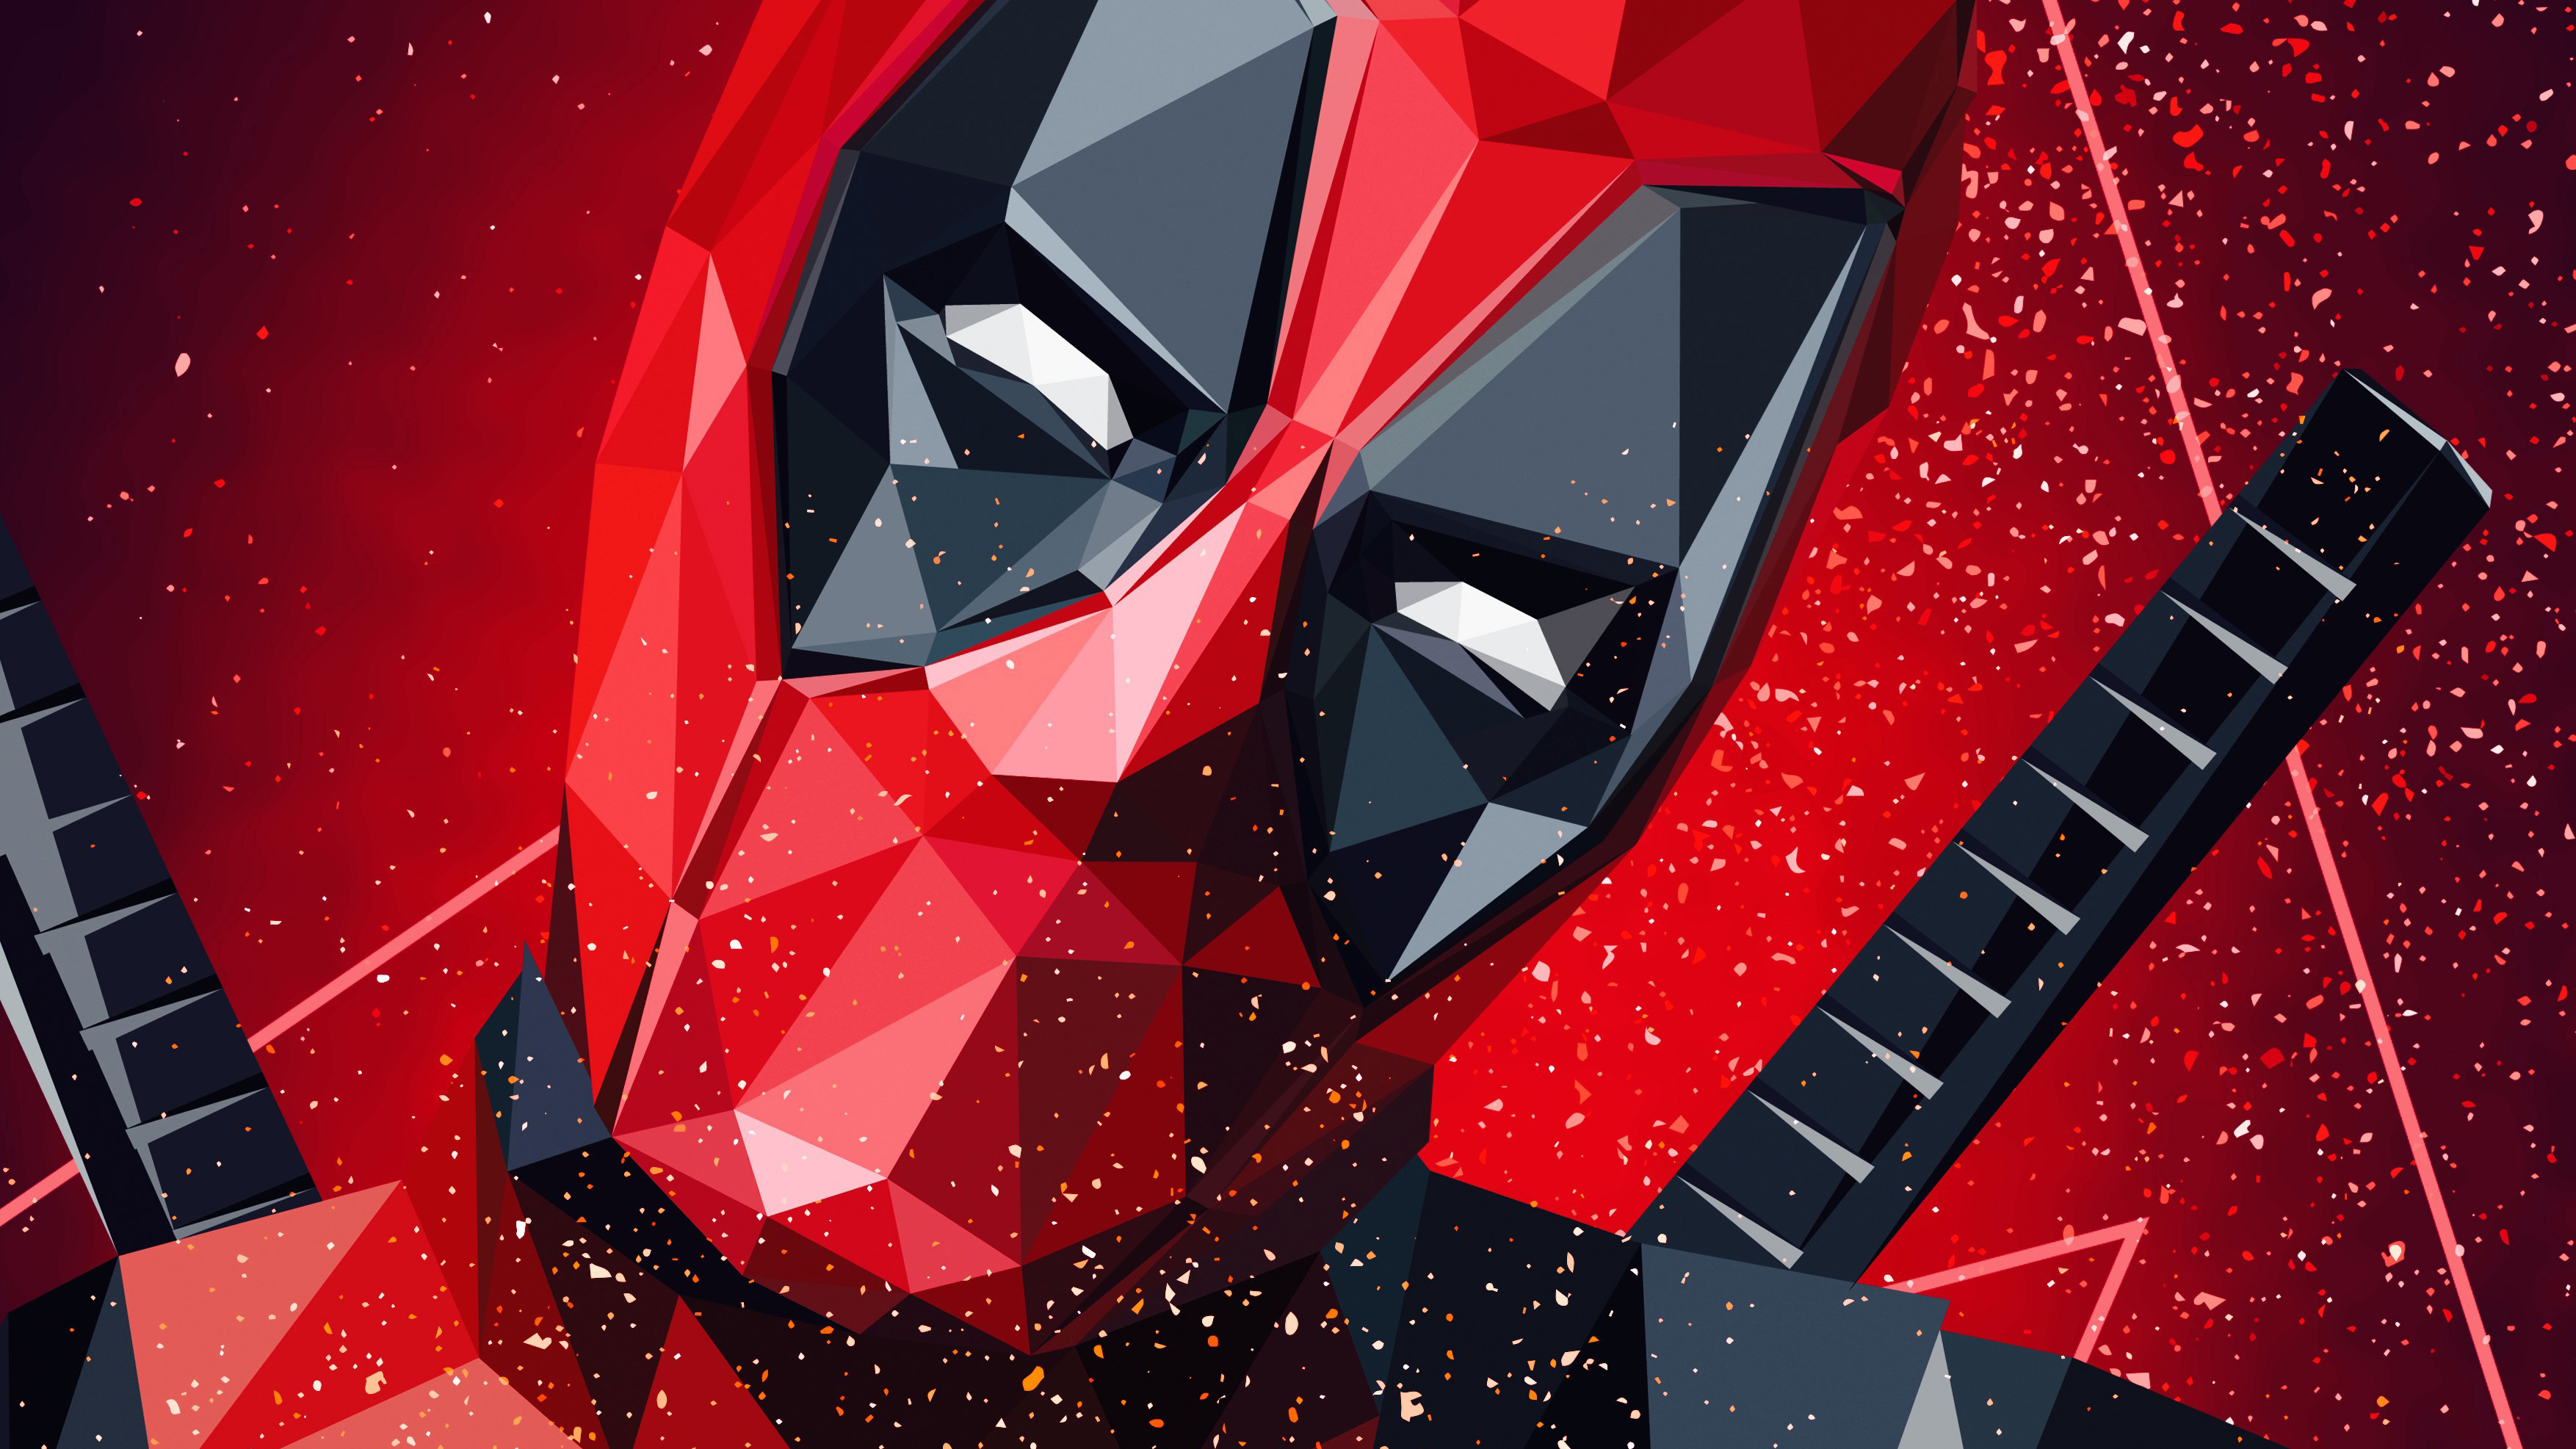 Deadpool Wallpapers 4k Android 3508x1973 Download Hd Wallpaper Wallpapertip